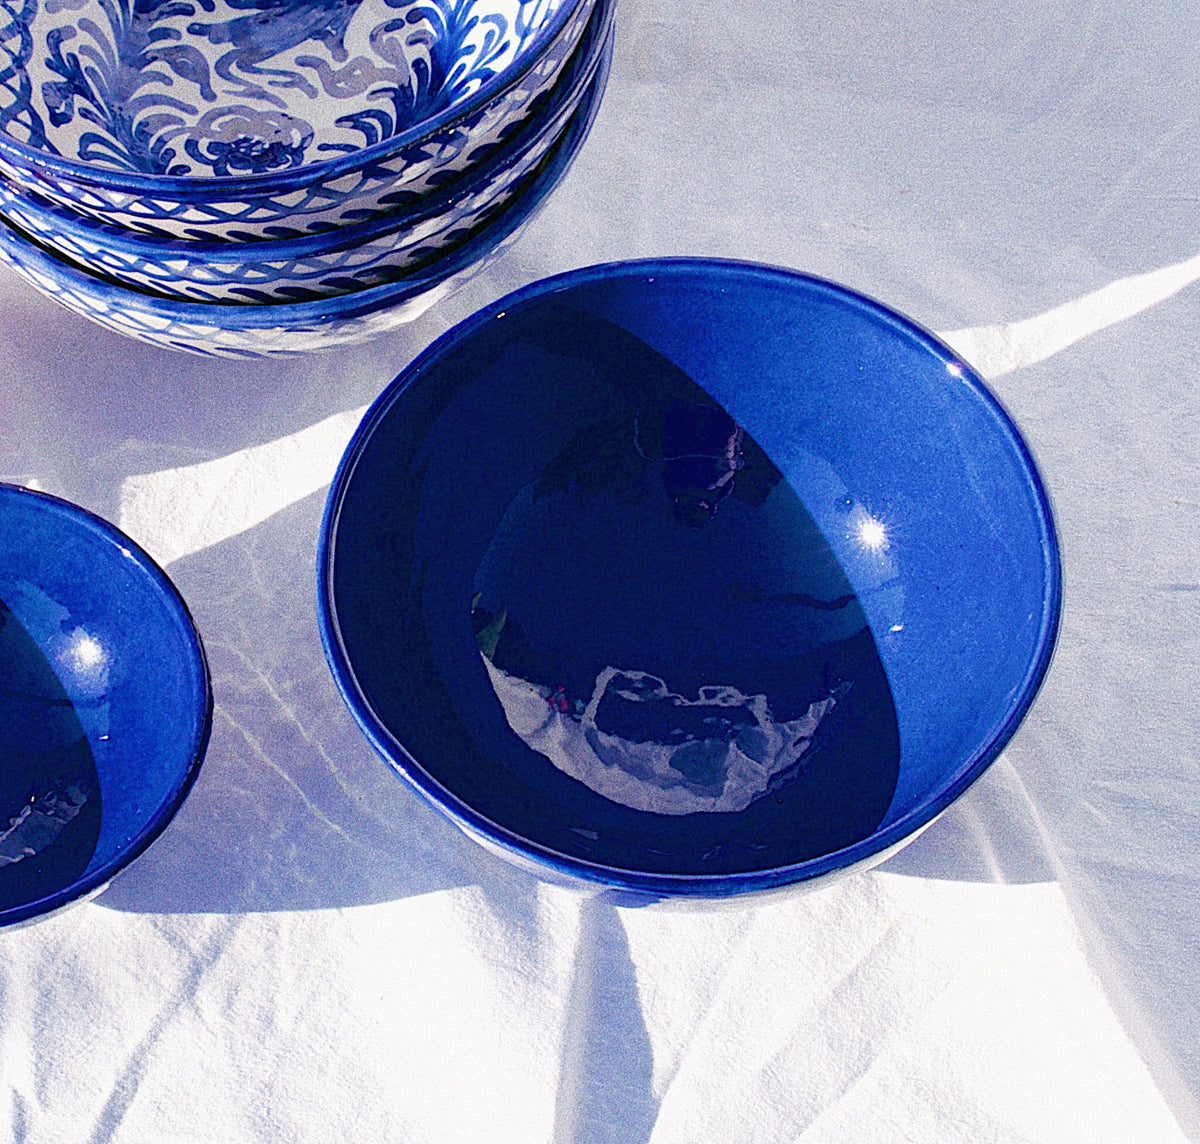 MEDIUM bowl with blue glaze - Pomelo casa